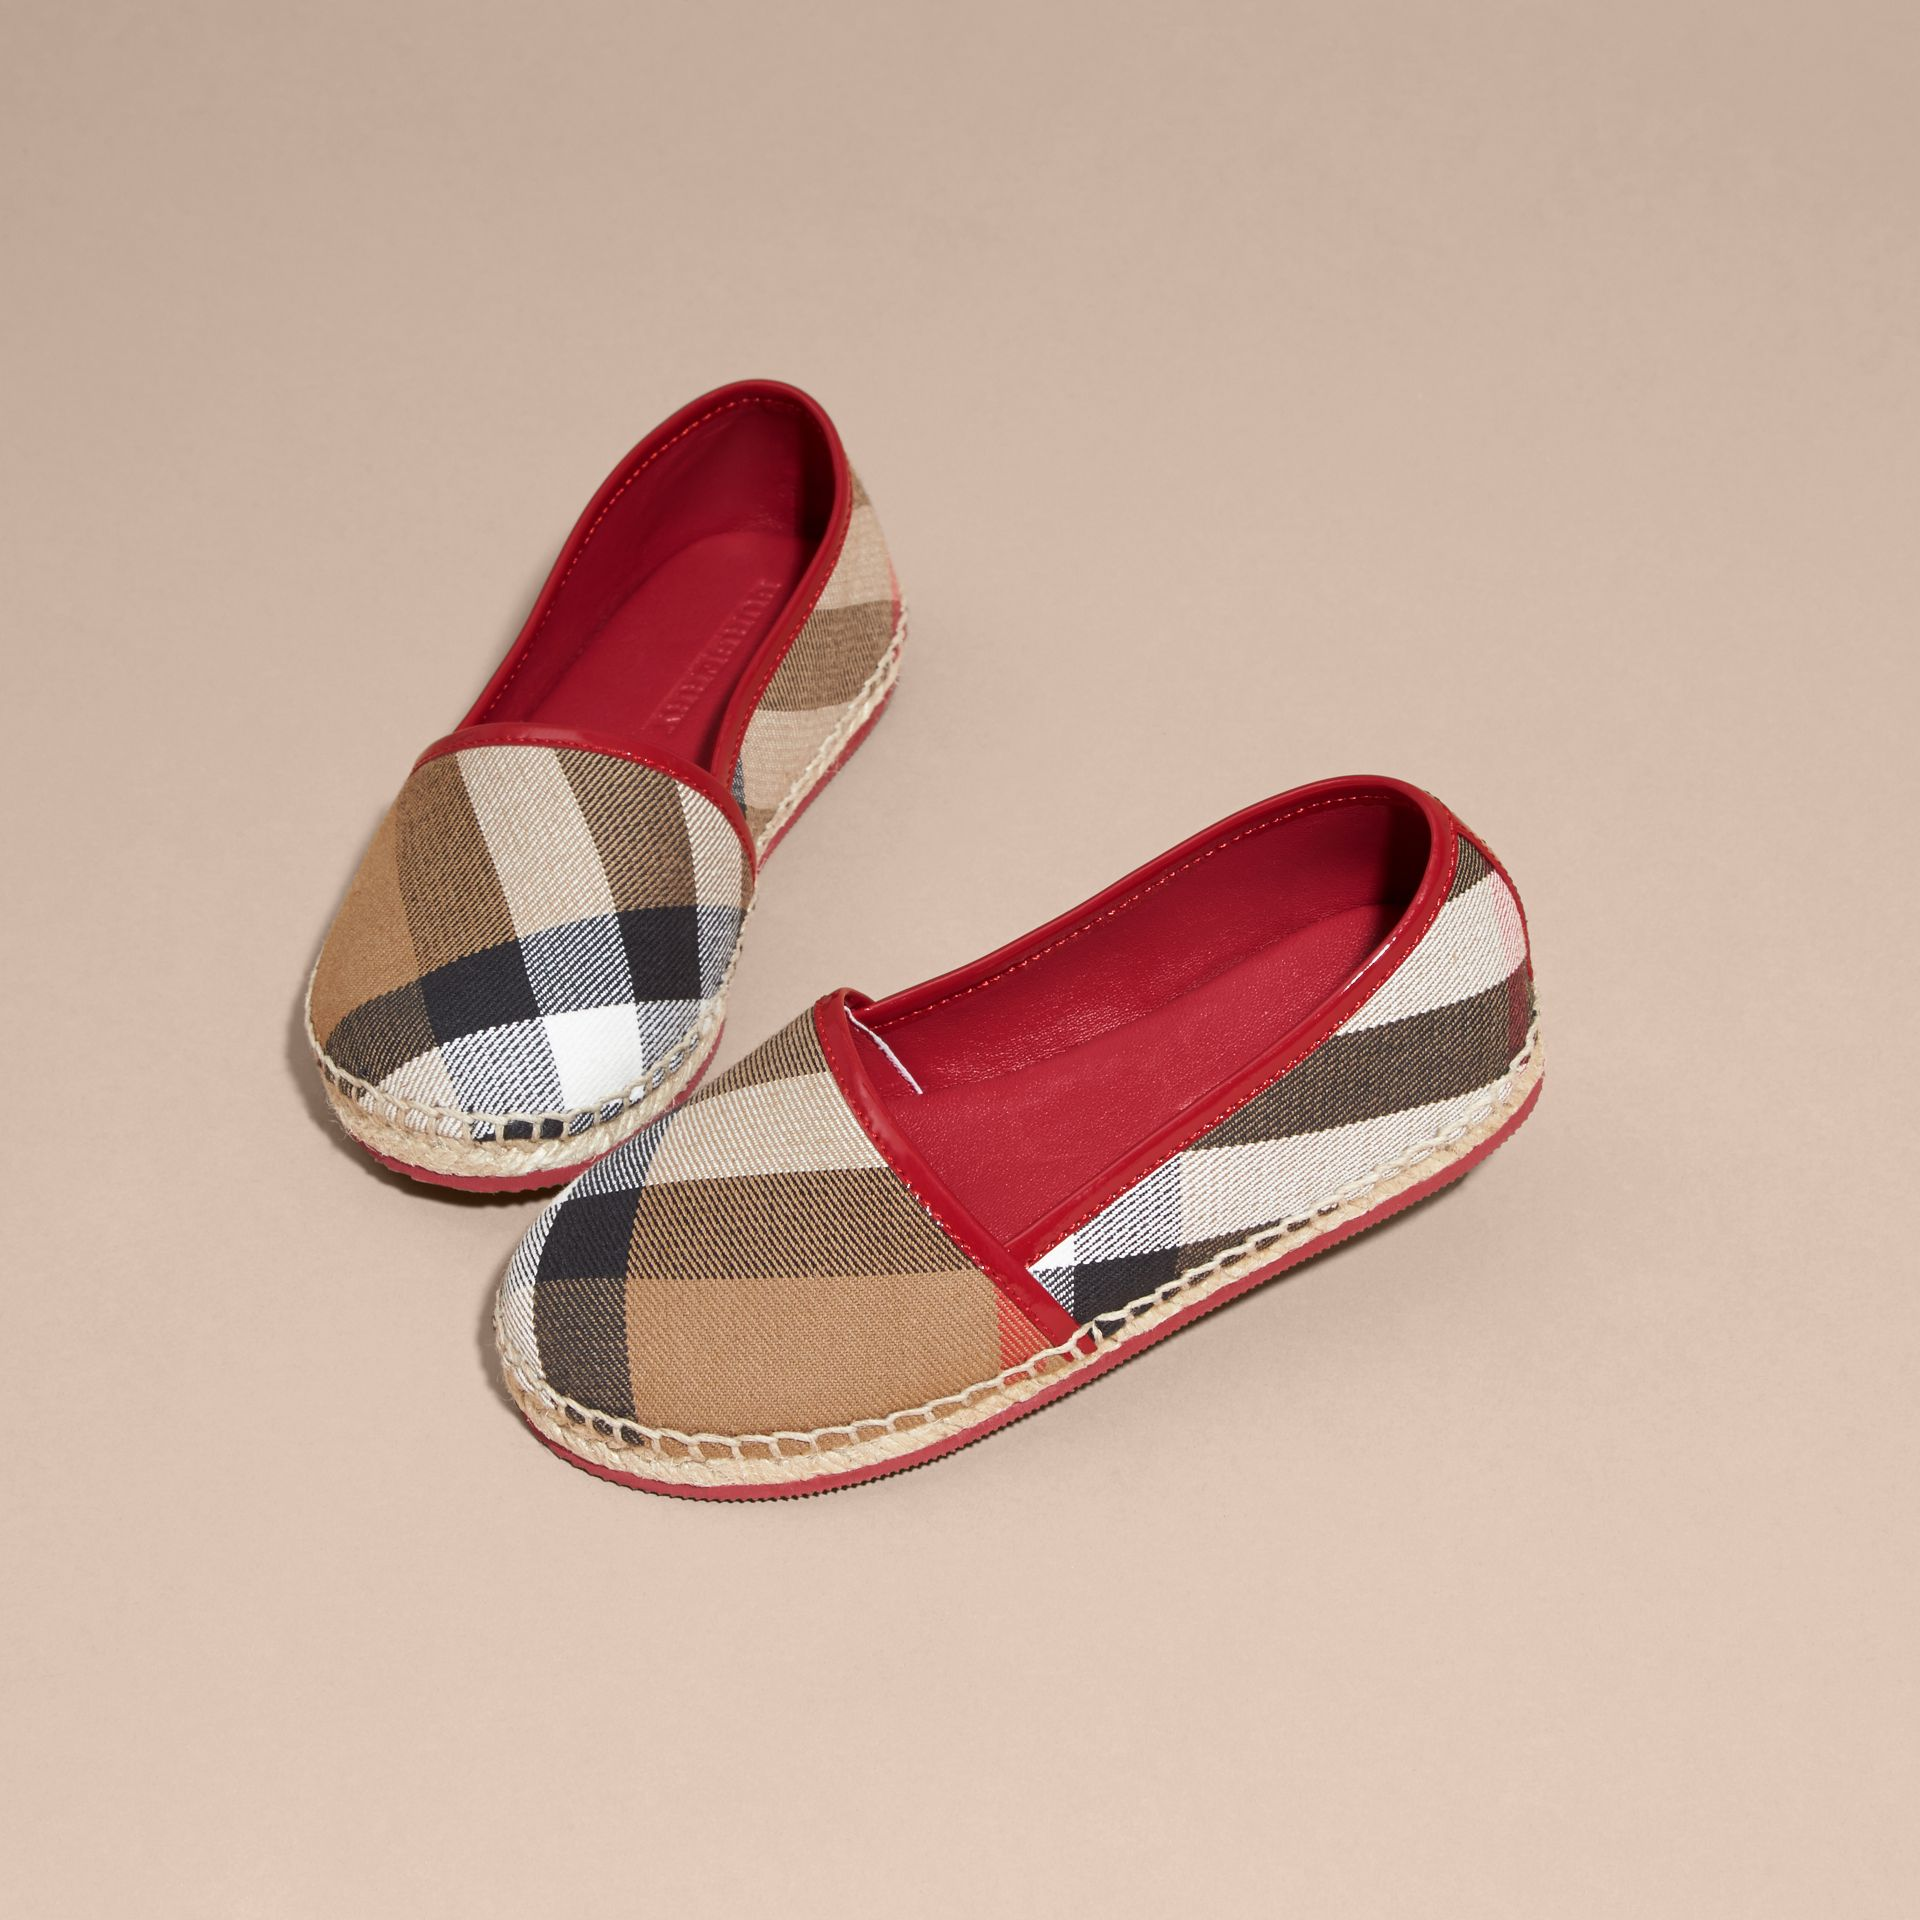 House Check Cotton Canvas Espadrilles Berry Pink - gallery image 3